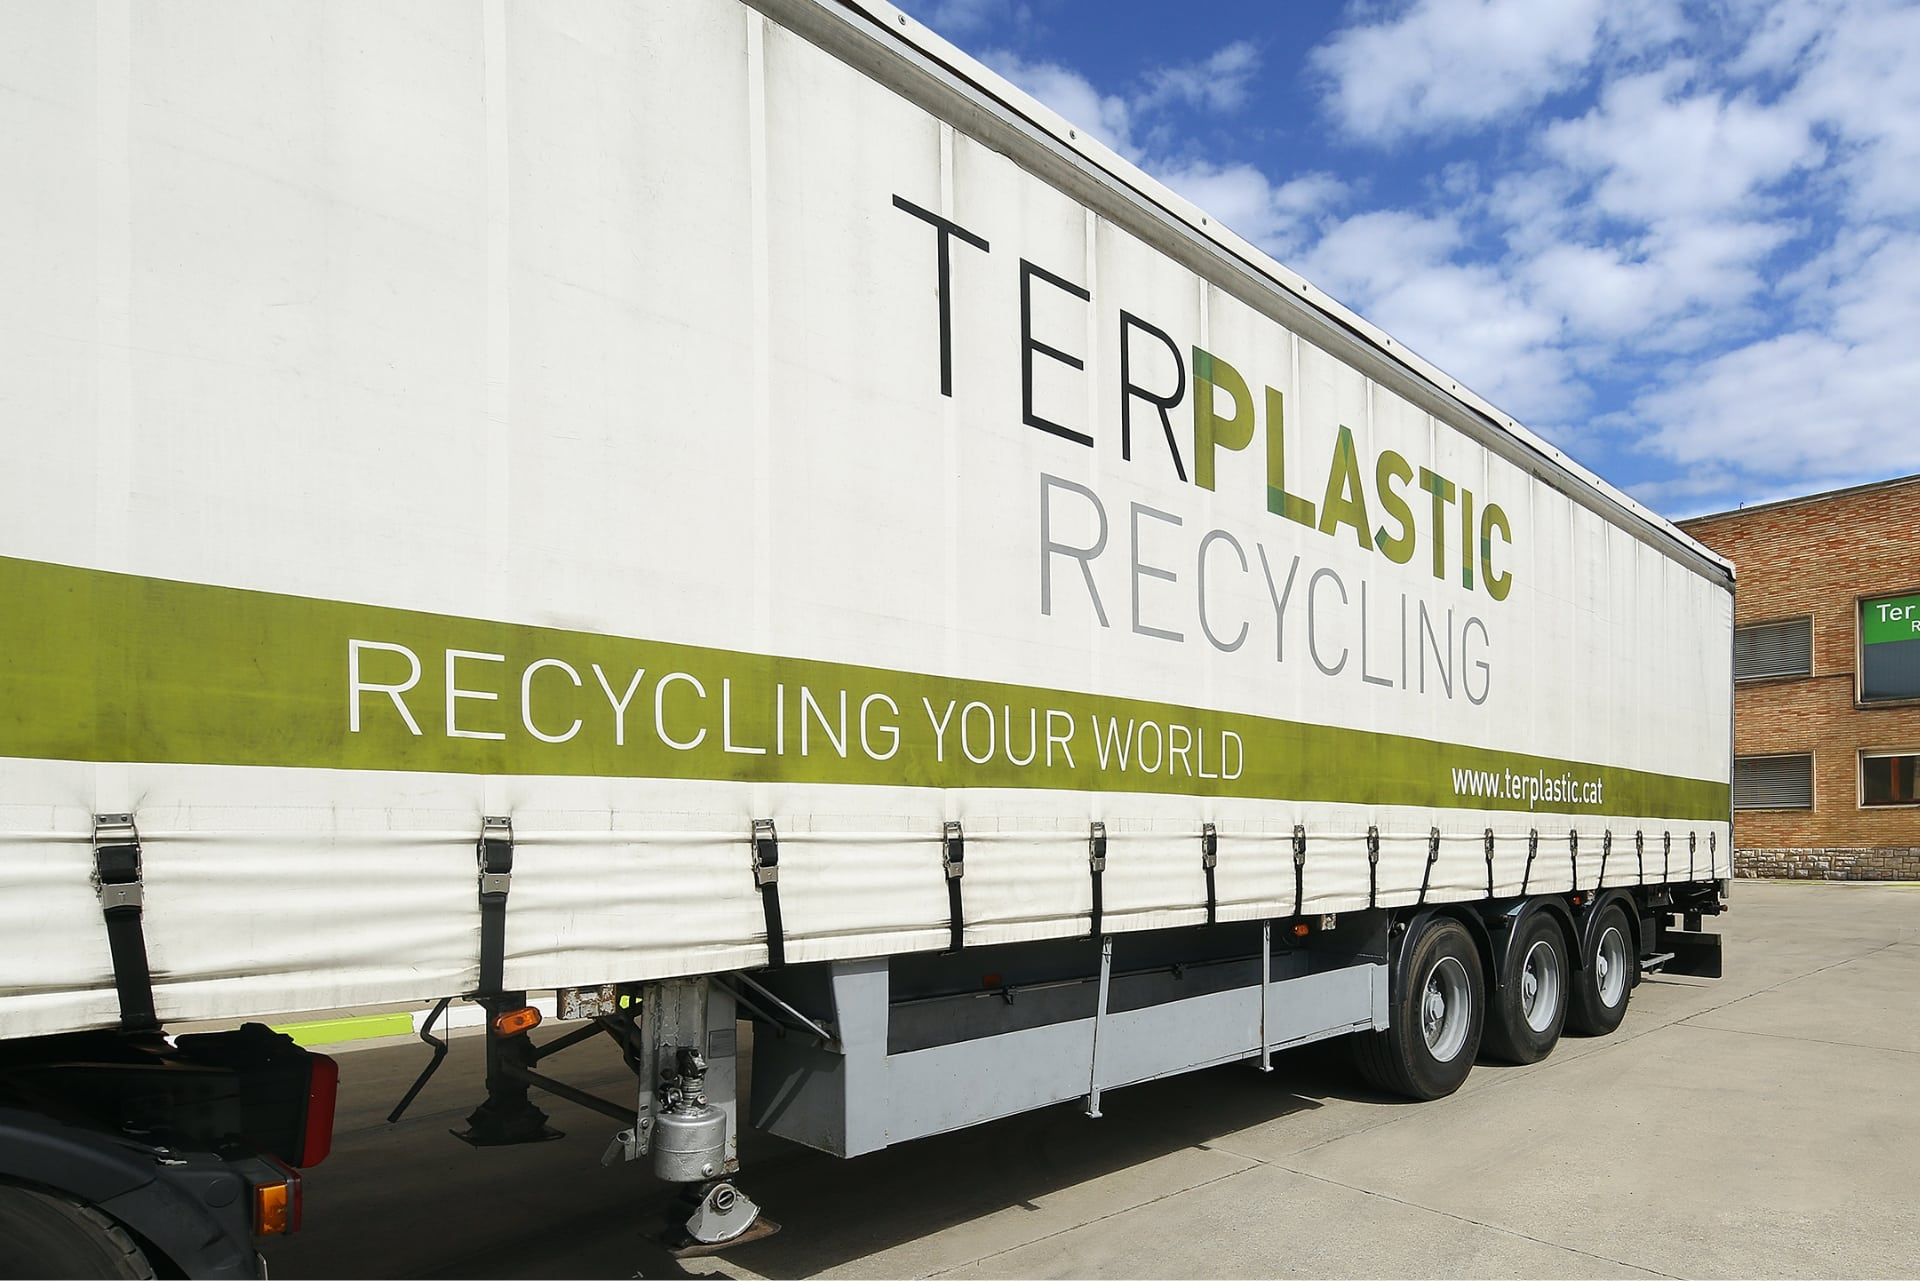 Terplastic, recycling your world